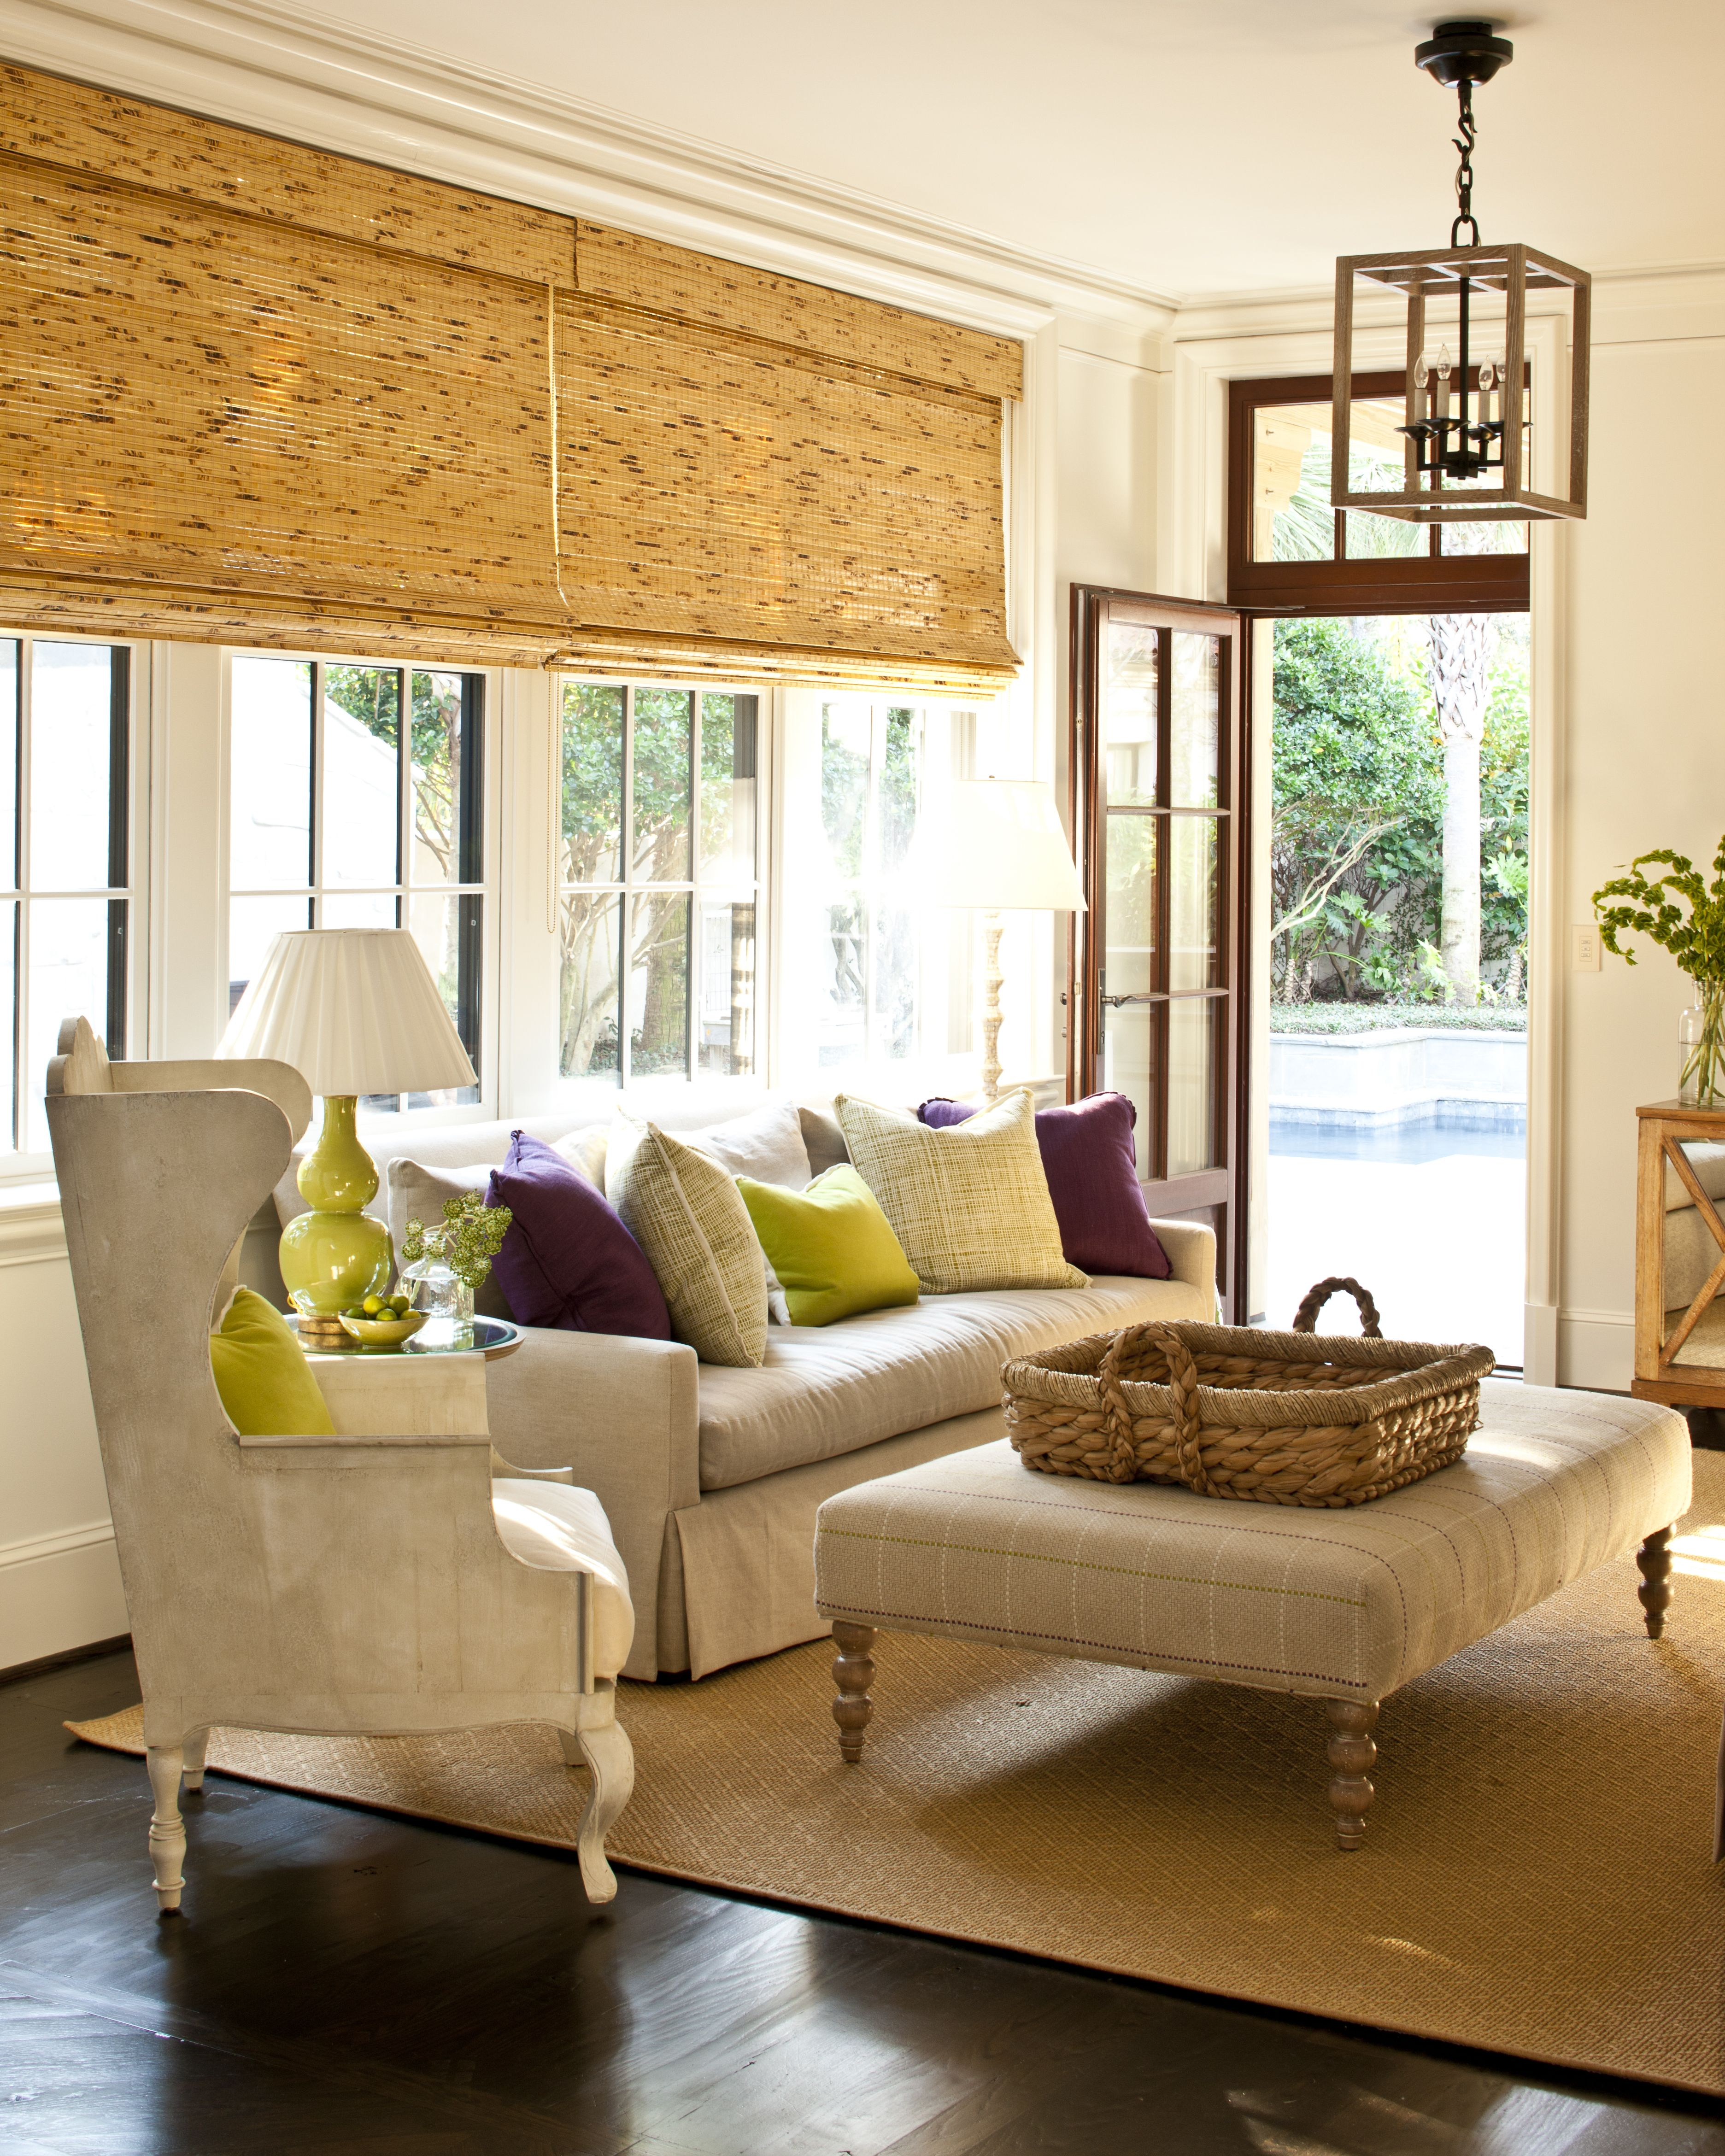 Great sitting area off breakfast room linen and casual window